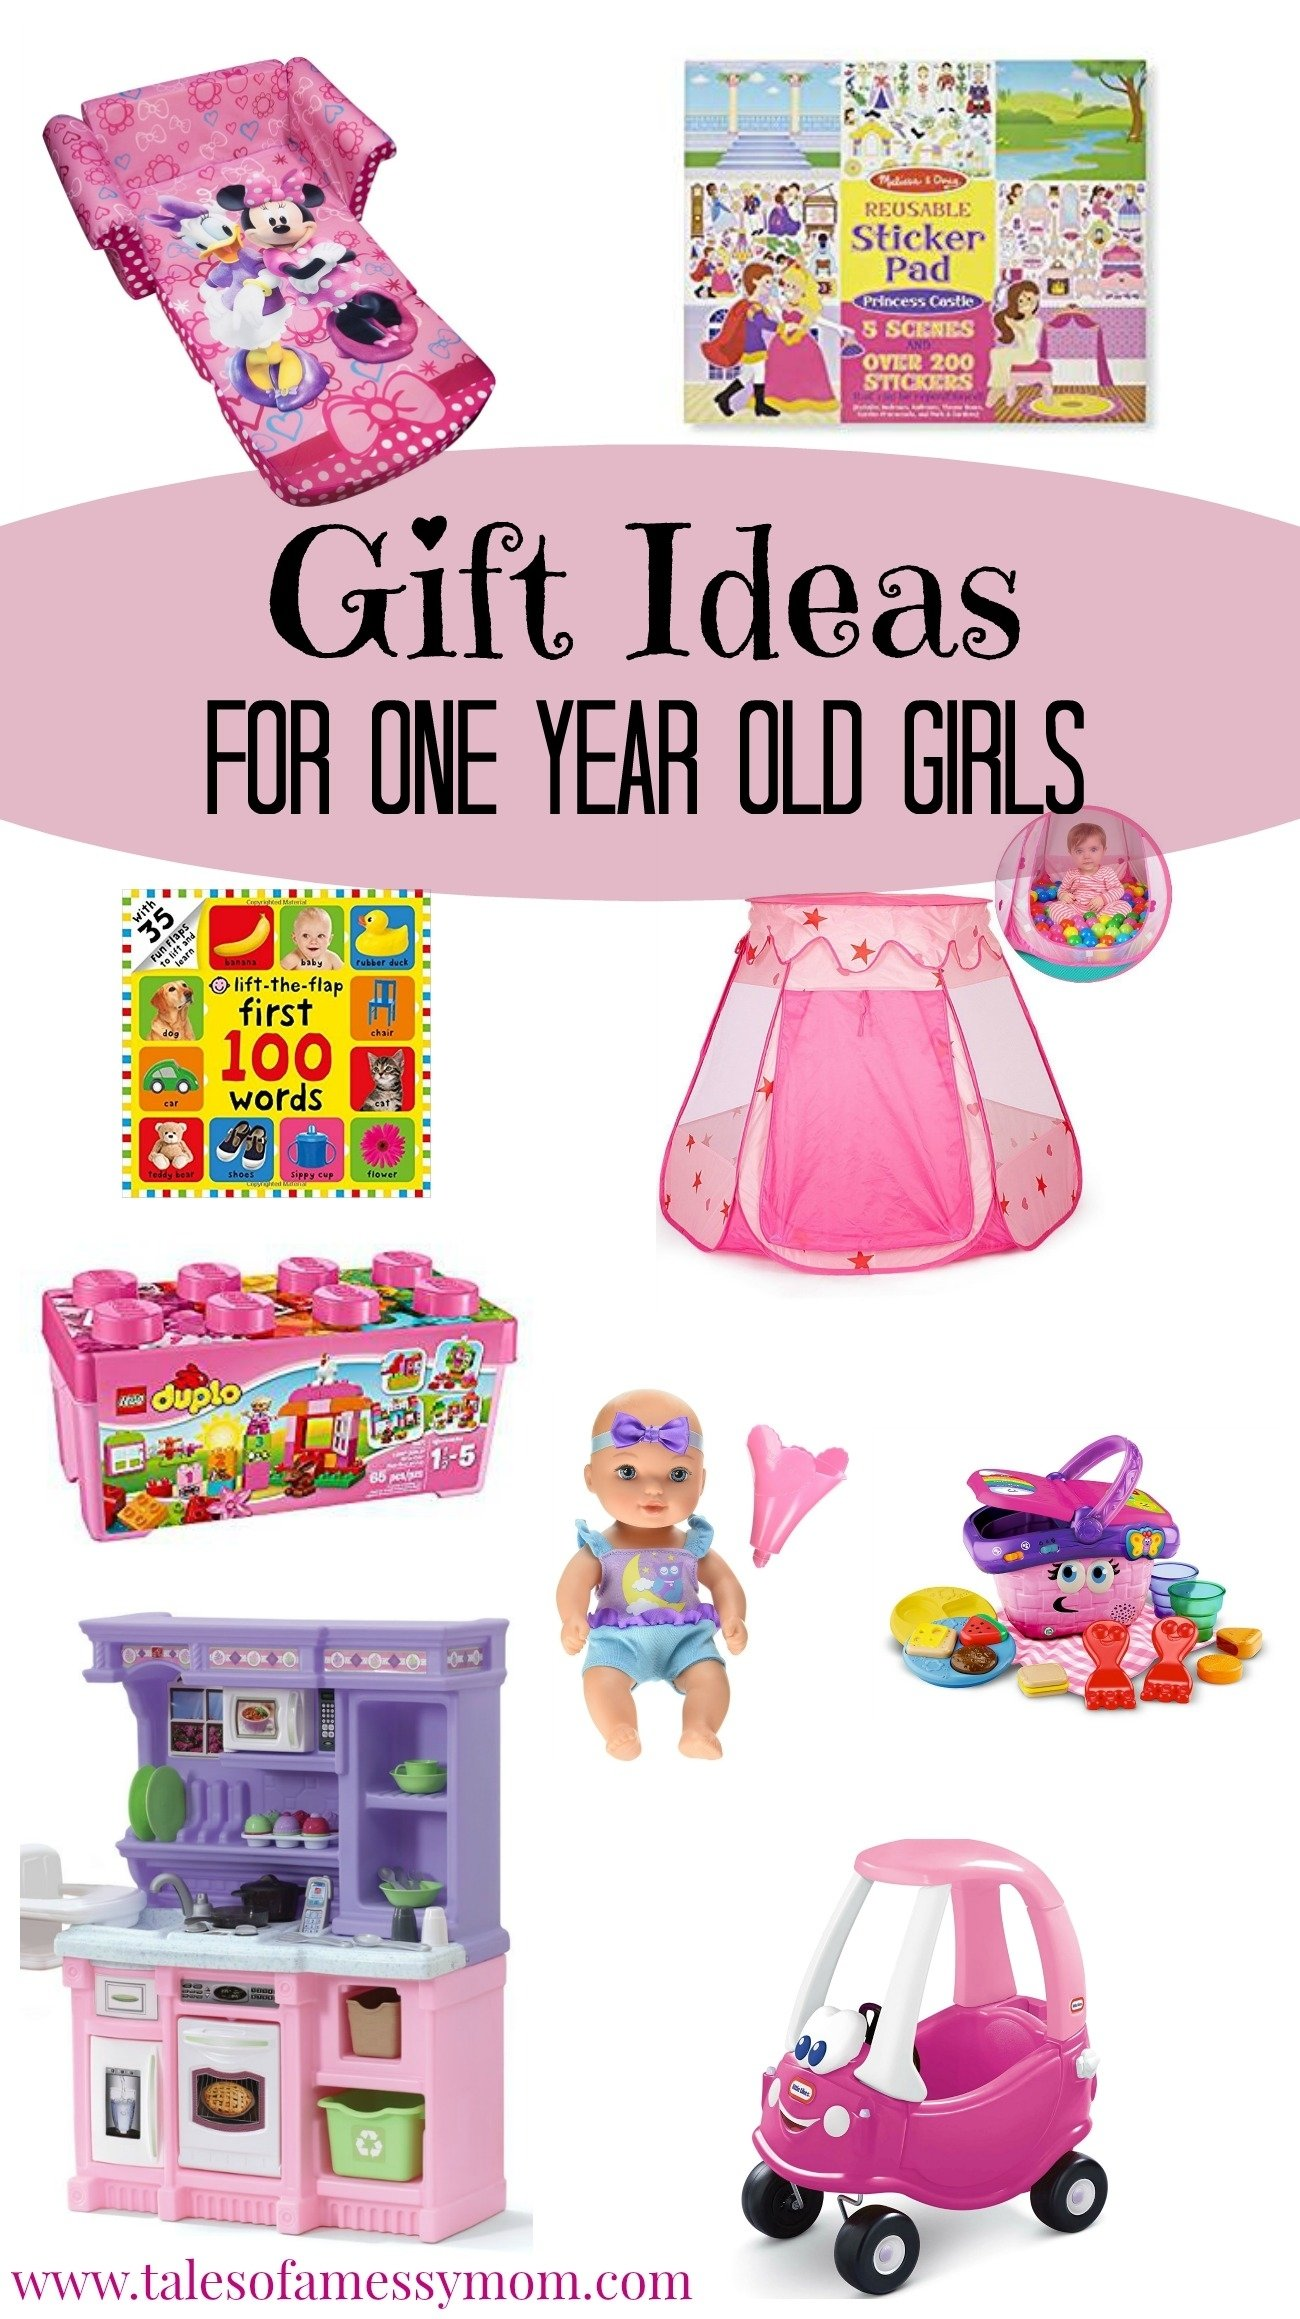 10 Best Gift Ideas For A One Year Old gift ideas for one year old girls tales of a messy mom 8 2020